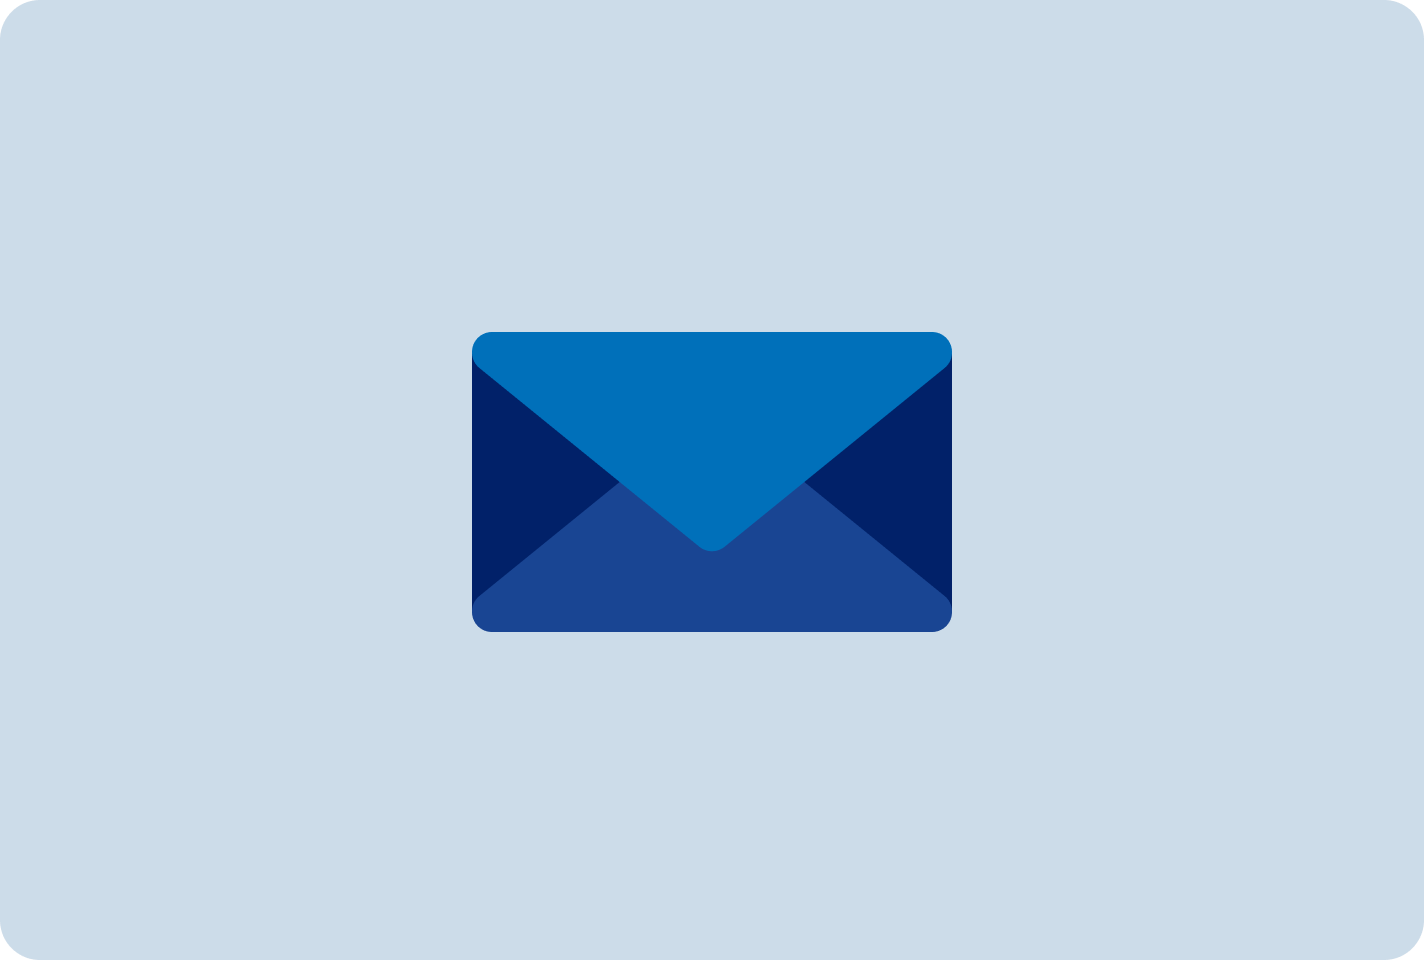 A blue envelope icon represents how you can quickly sign up for a PayPal Business account with just an email address